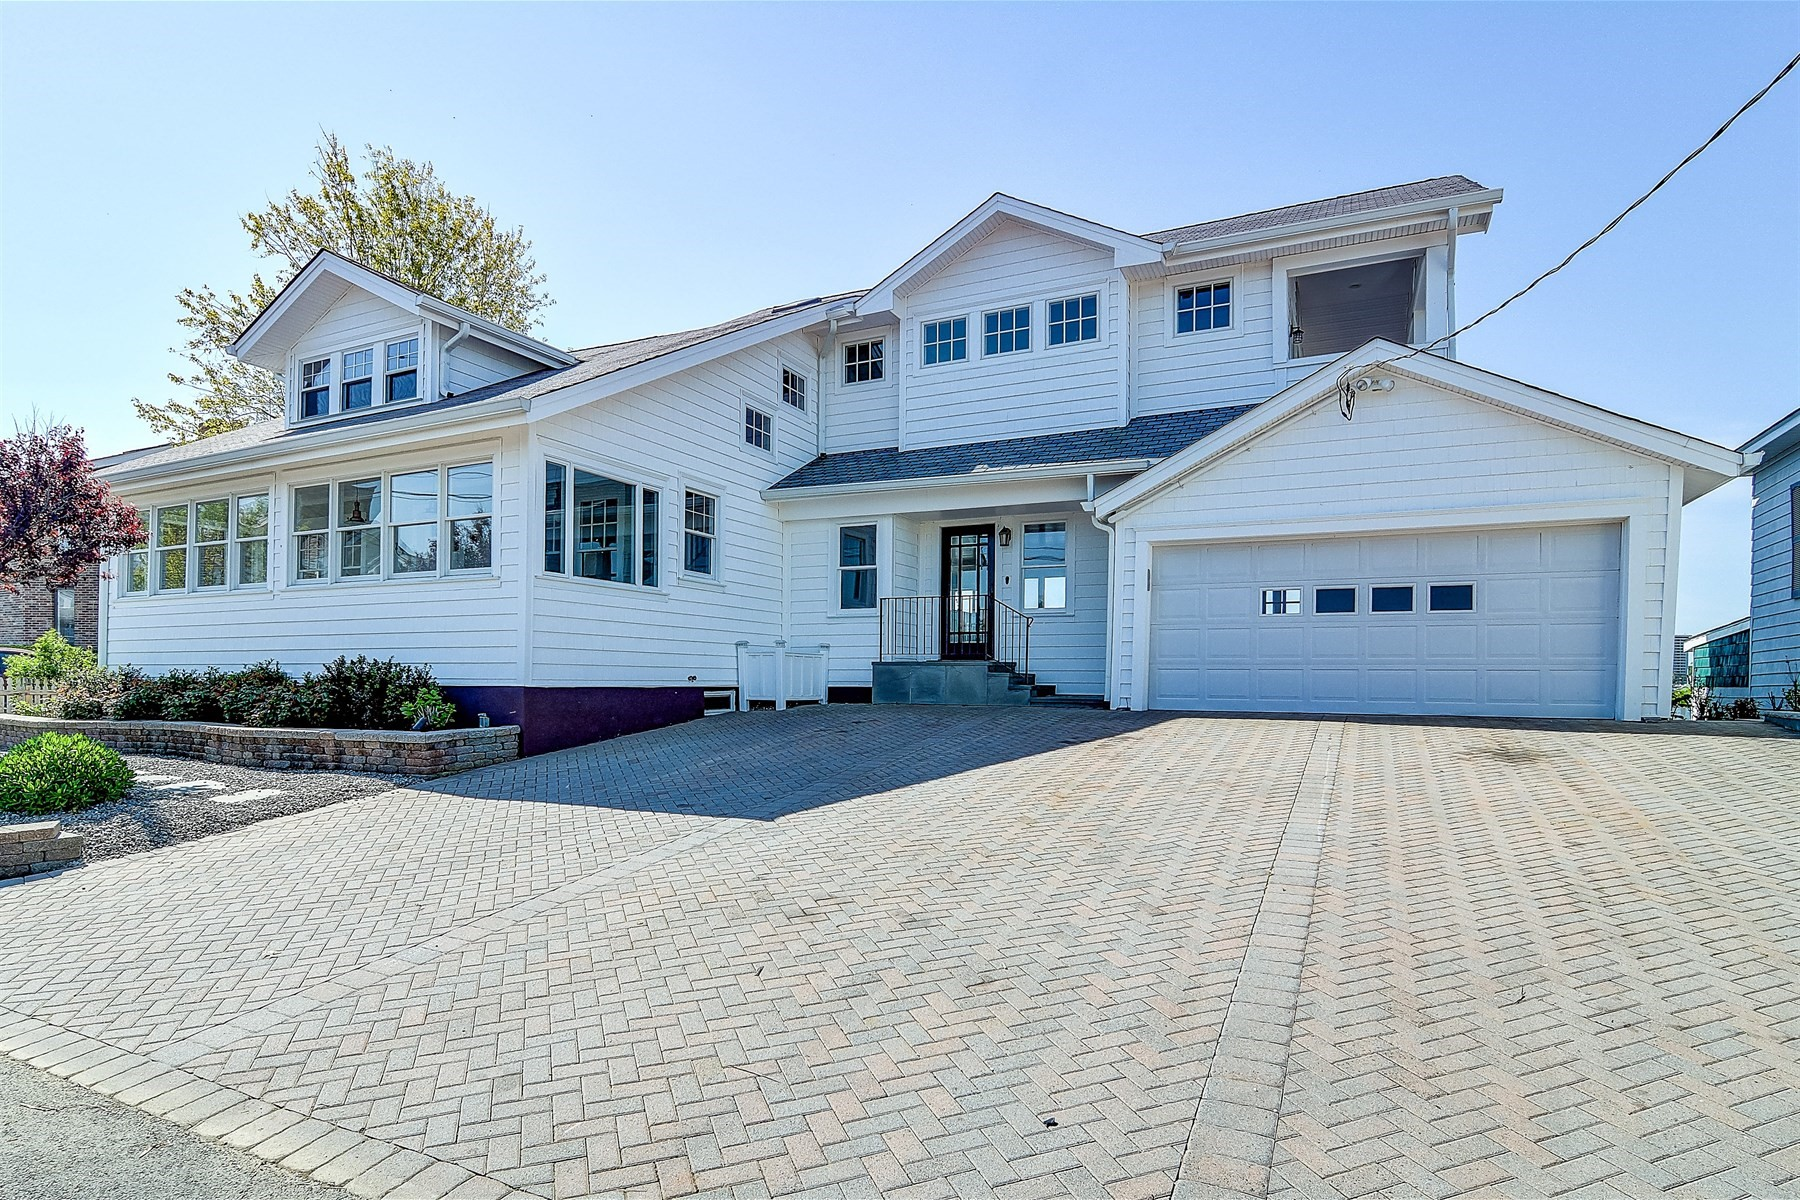 Single Family Home for Sale at 16 Riverview Rd. Monmouth Beach, New Jersey, 07750 United States